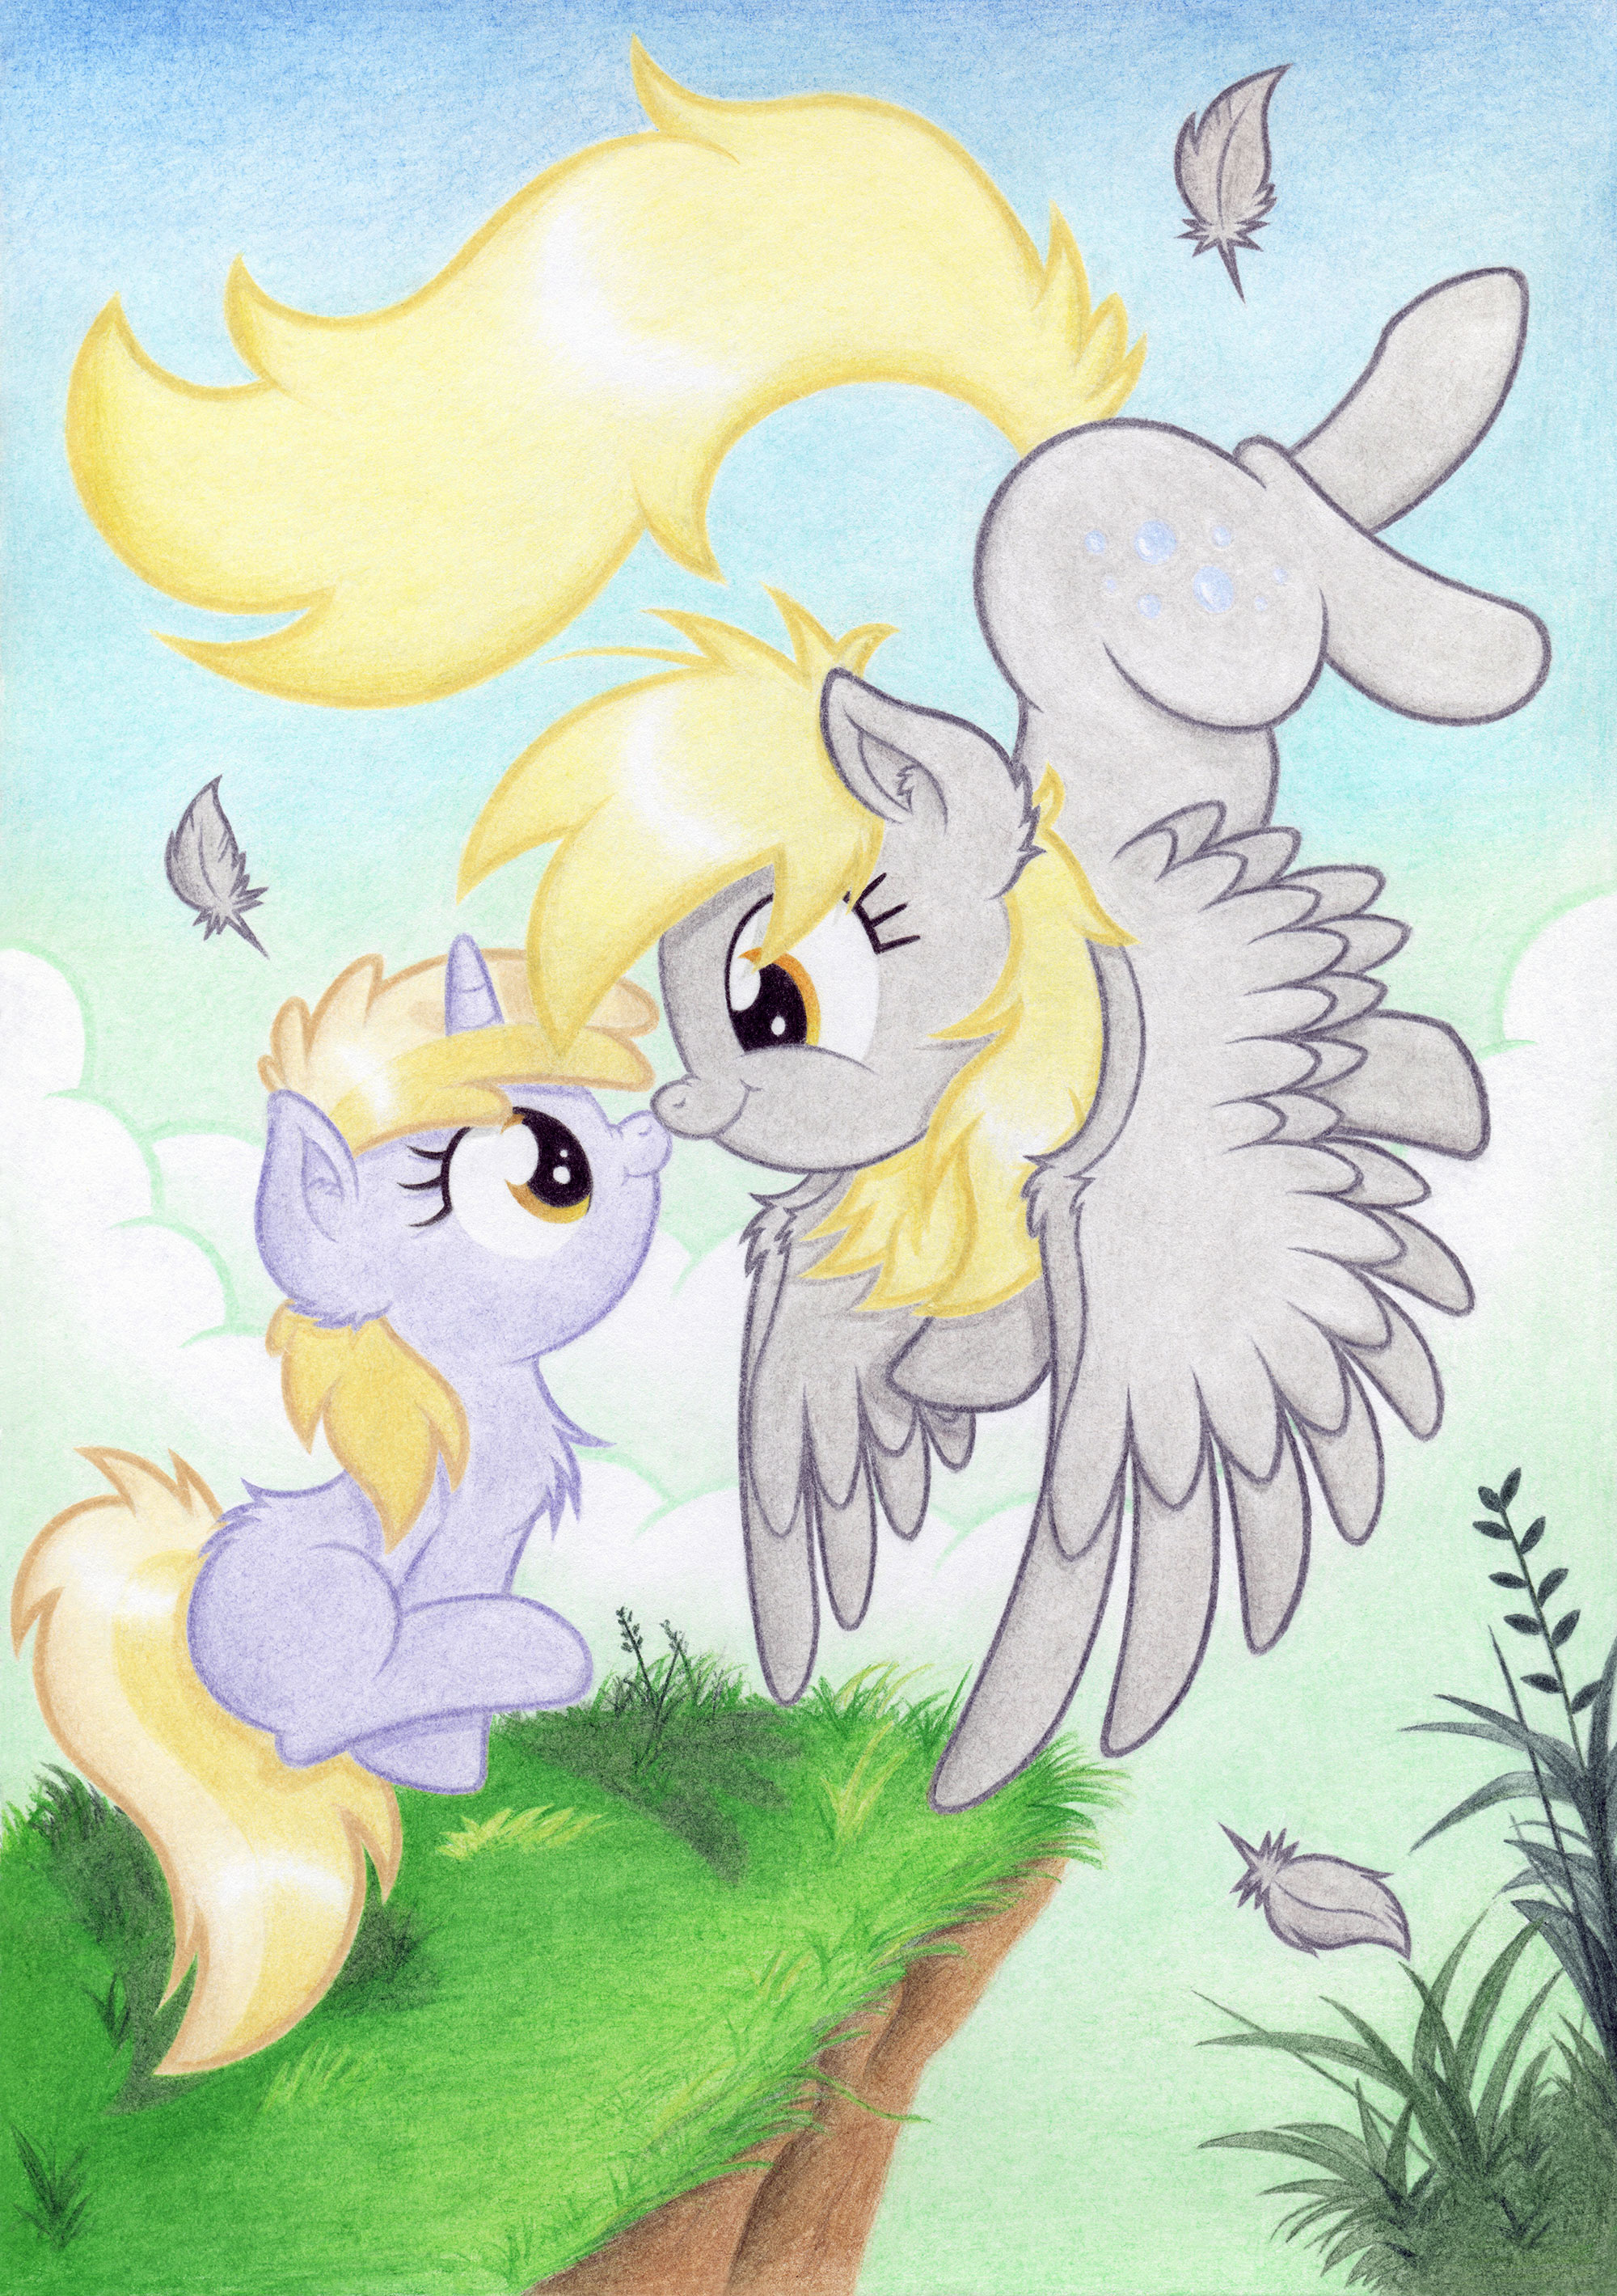 e621 2013 absurd_res agamnentzar amber_eyes blonde_hair boop cloud cub cute cutie_mark day derpy_hooves_(mlp) dinky_hooves_(mlp) duo equine face_to_face feathered_wings feathers female feral flying friendship_is_magic fur grass grey_fur hair hi_res horn mammal my_little_pony outside pegasus sitting sky smile unicorn wings yellow_eyes young